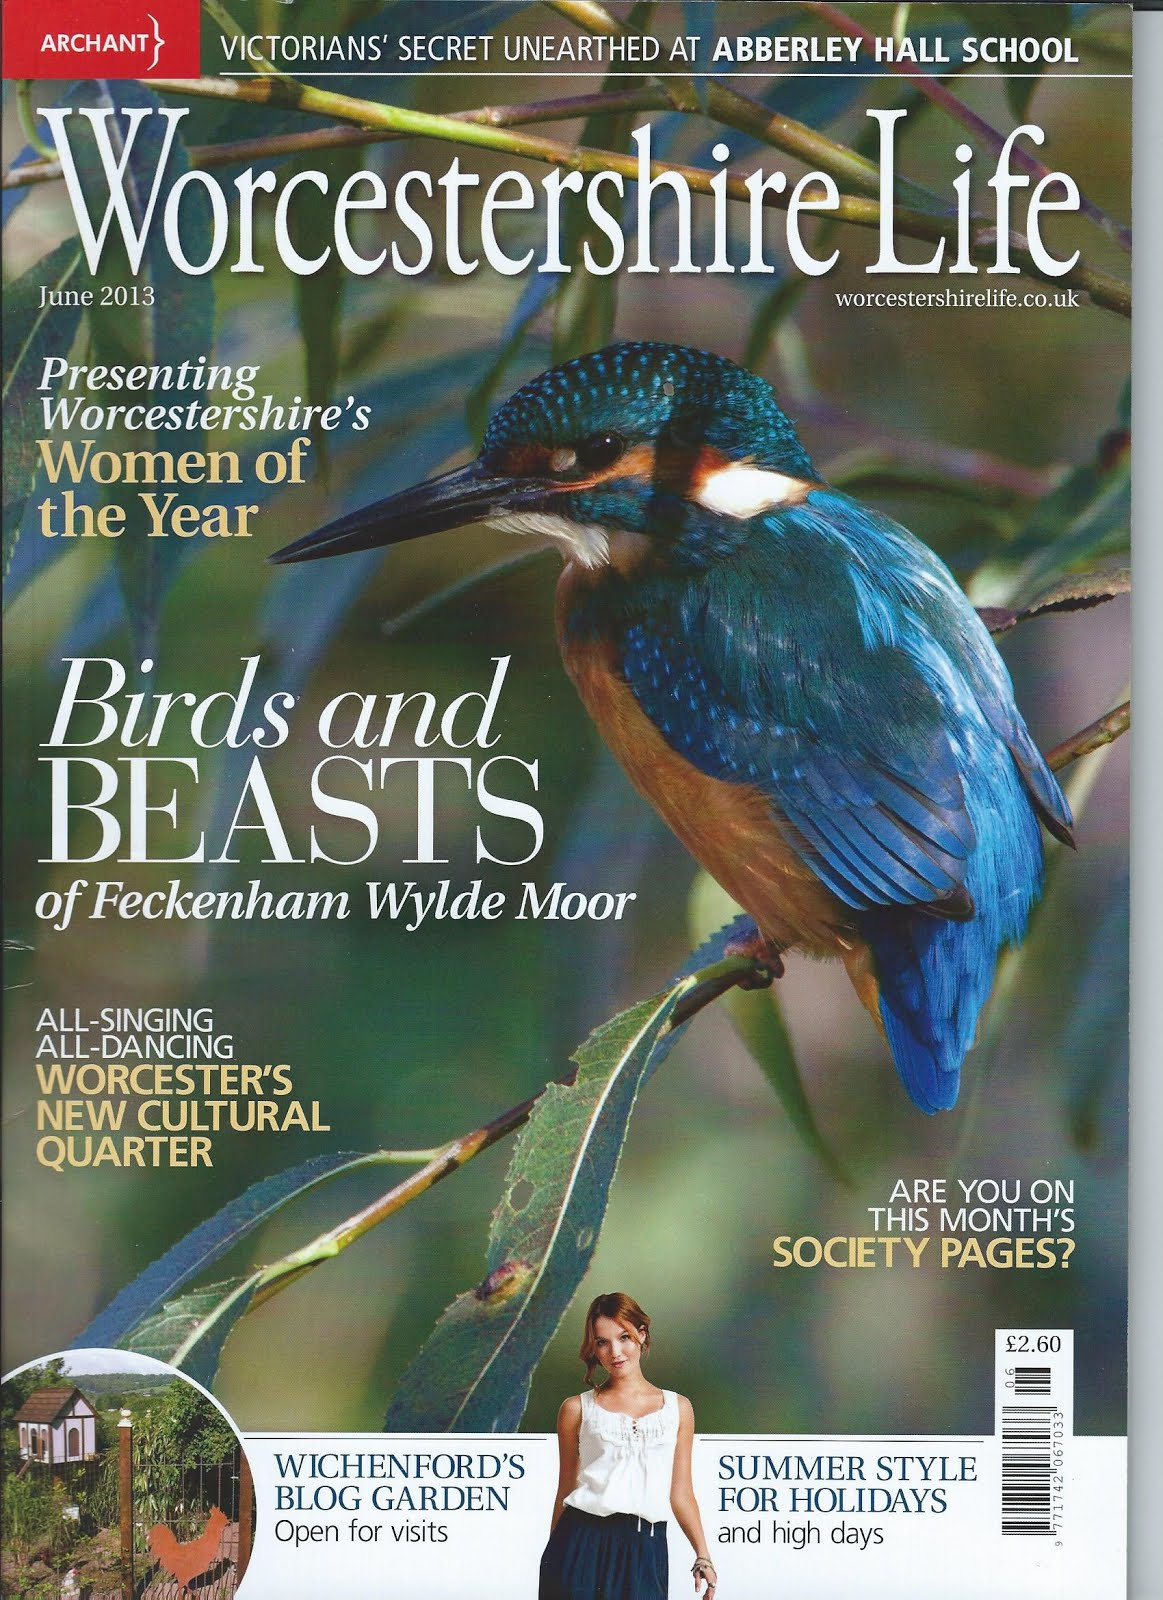 PTC Garden Makes the last ever issue of Worcestershire Life Magazine